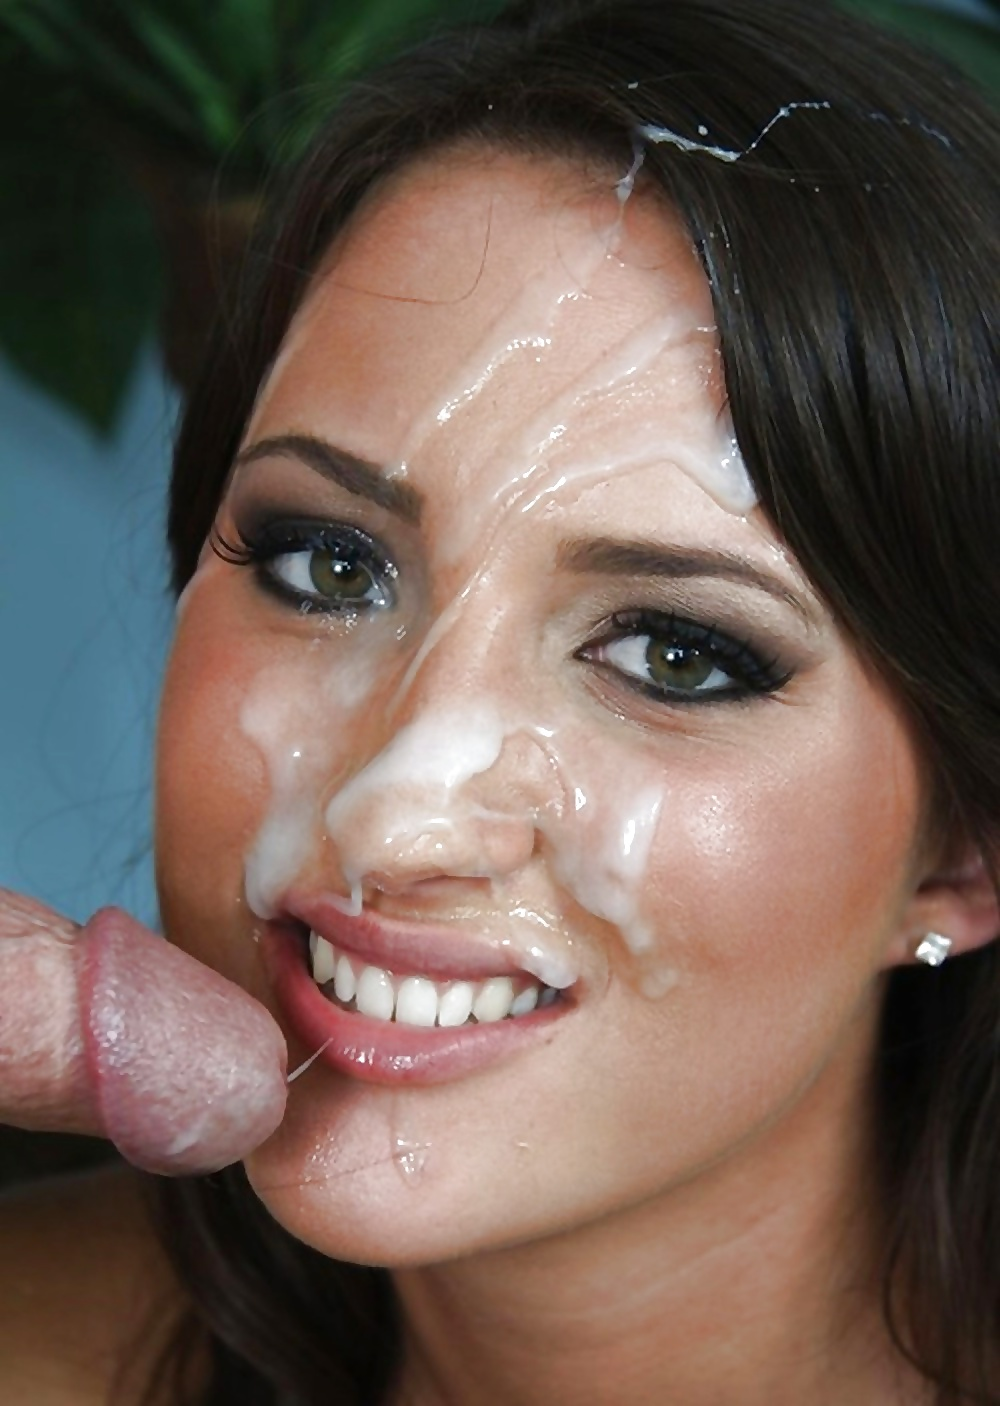 Husband enters laundry and catches mom with xxx sperm on face having incest